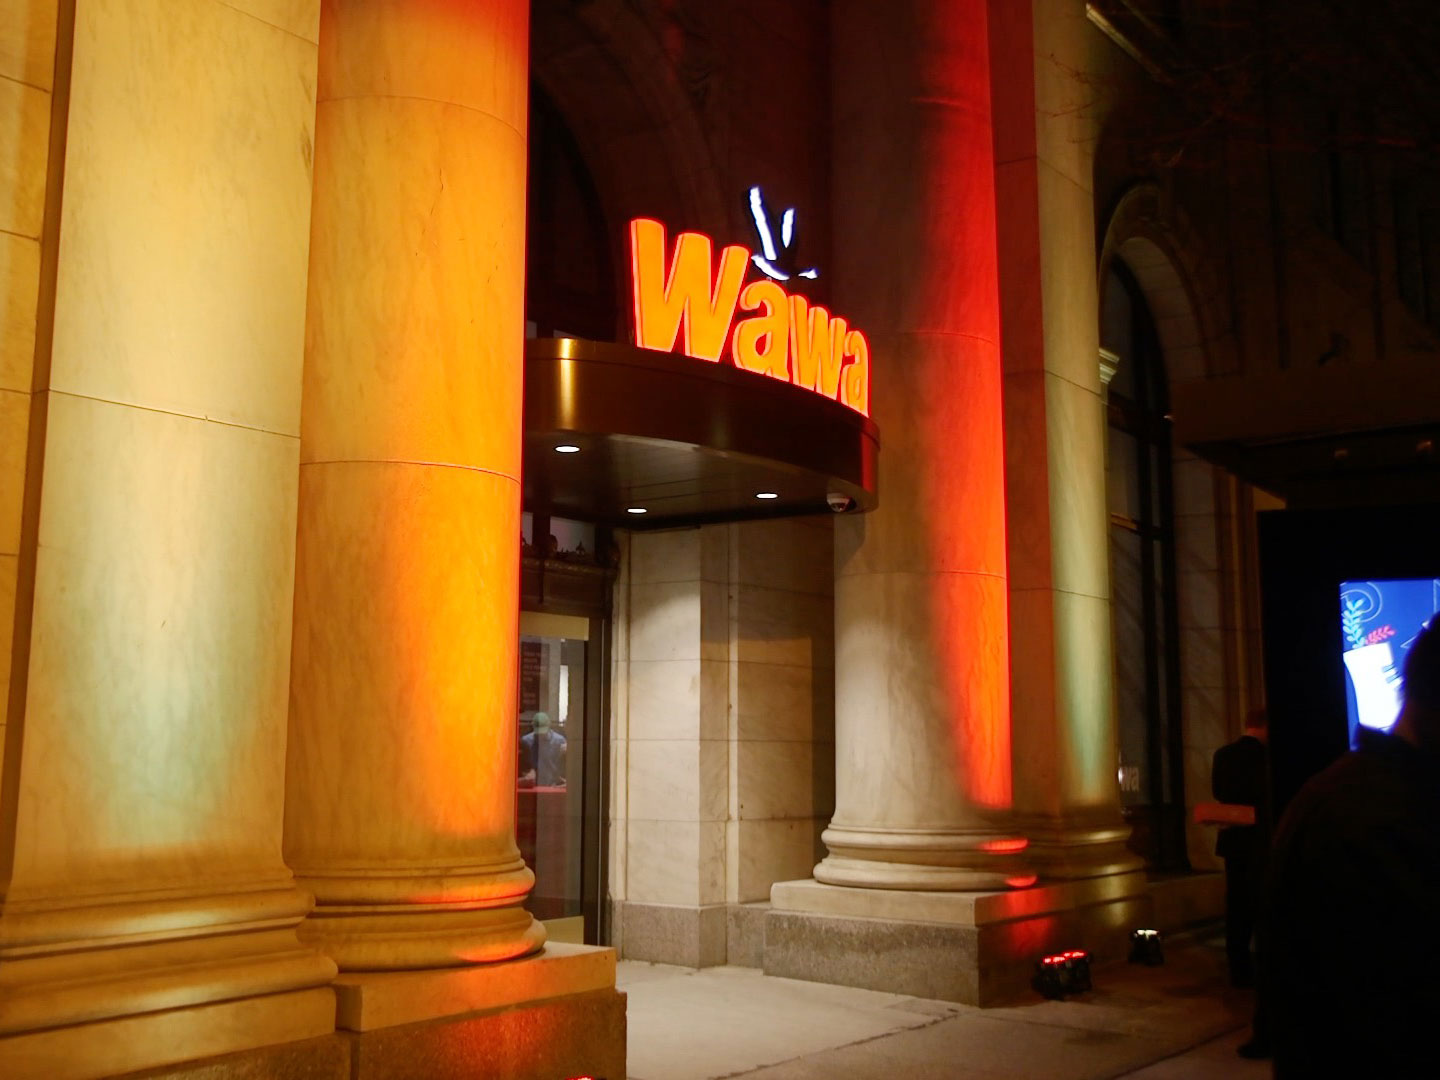 The World's Largest Wawa Is an Instant Philadelphia Landmark